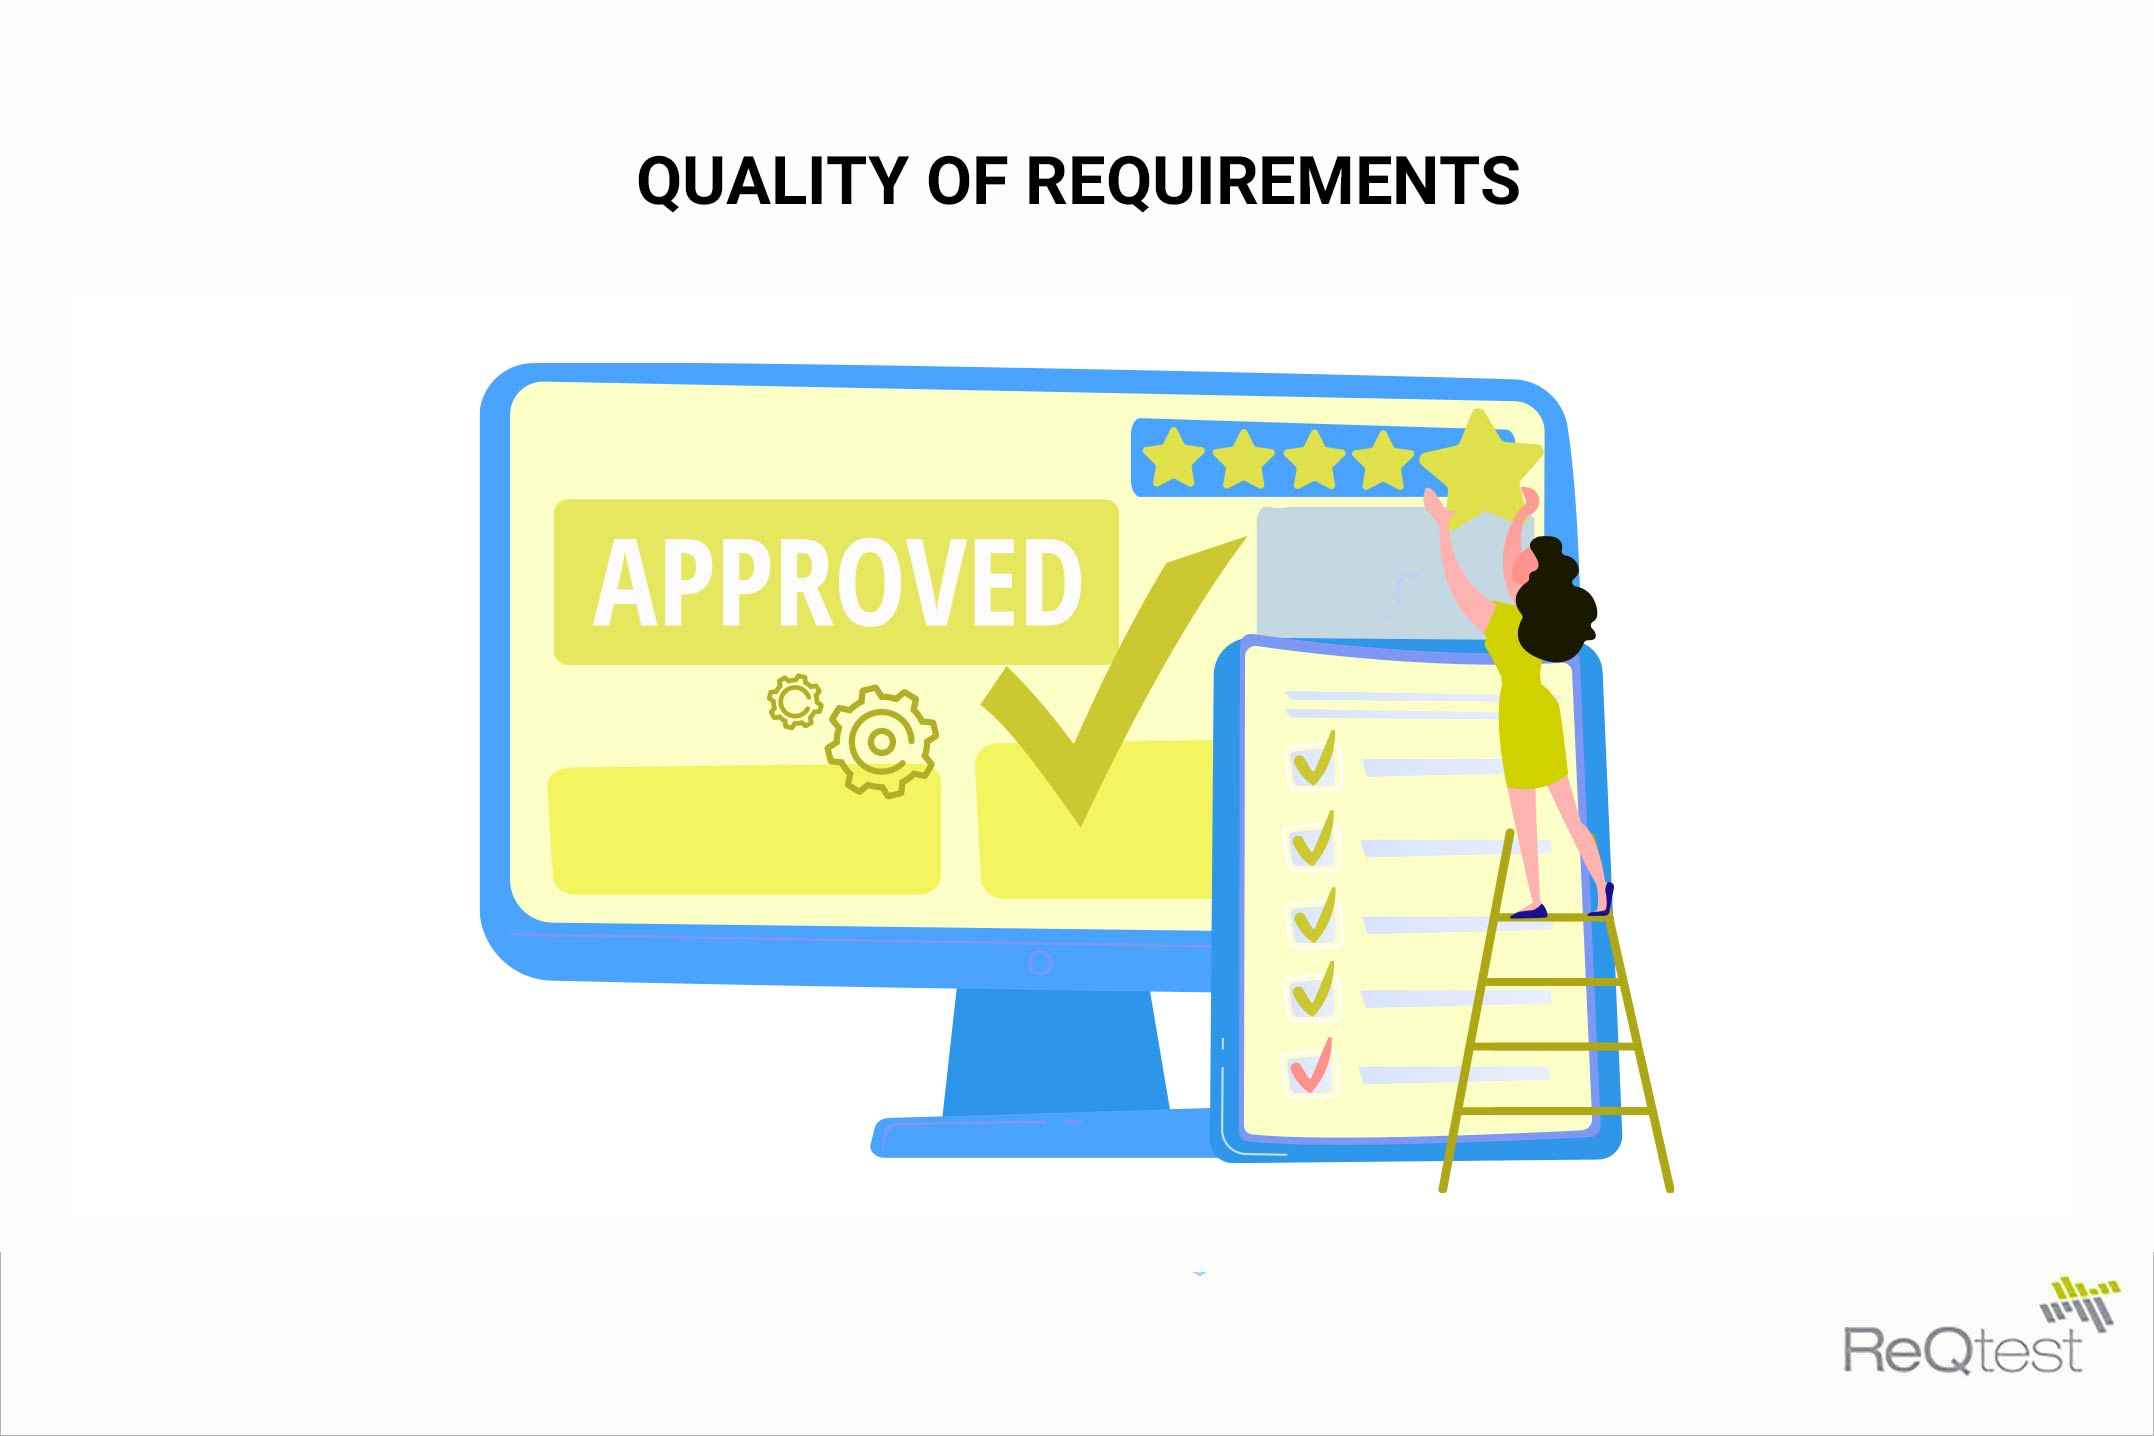 Quality of requirements